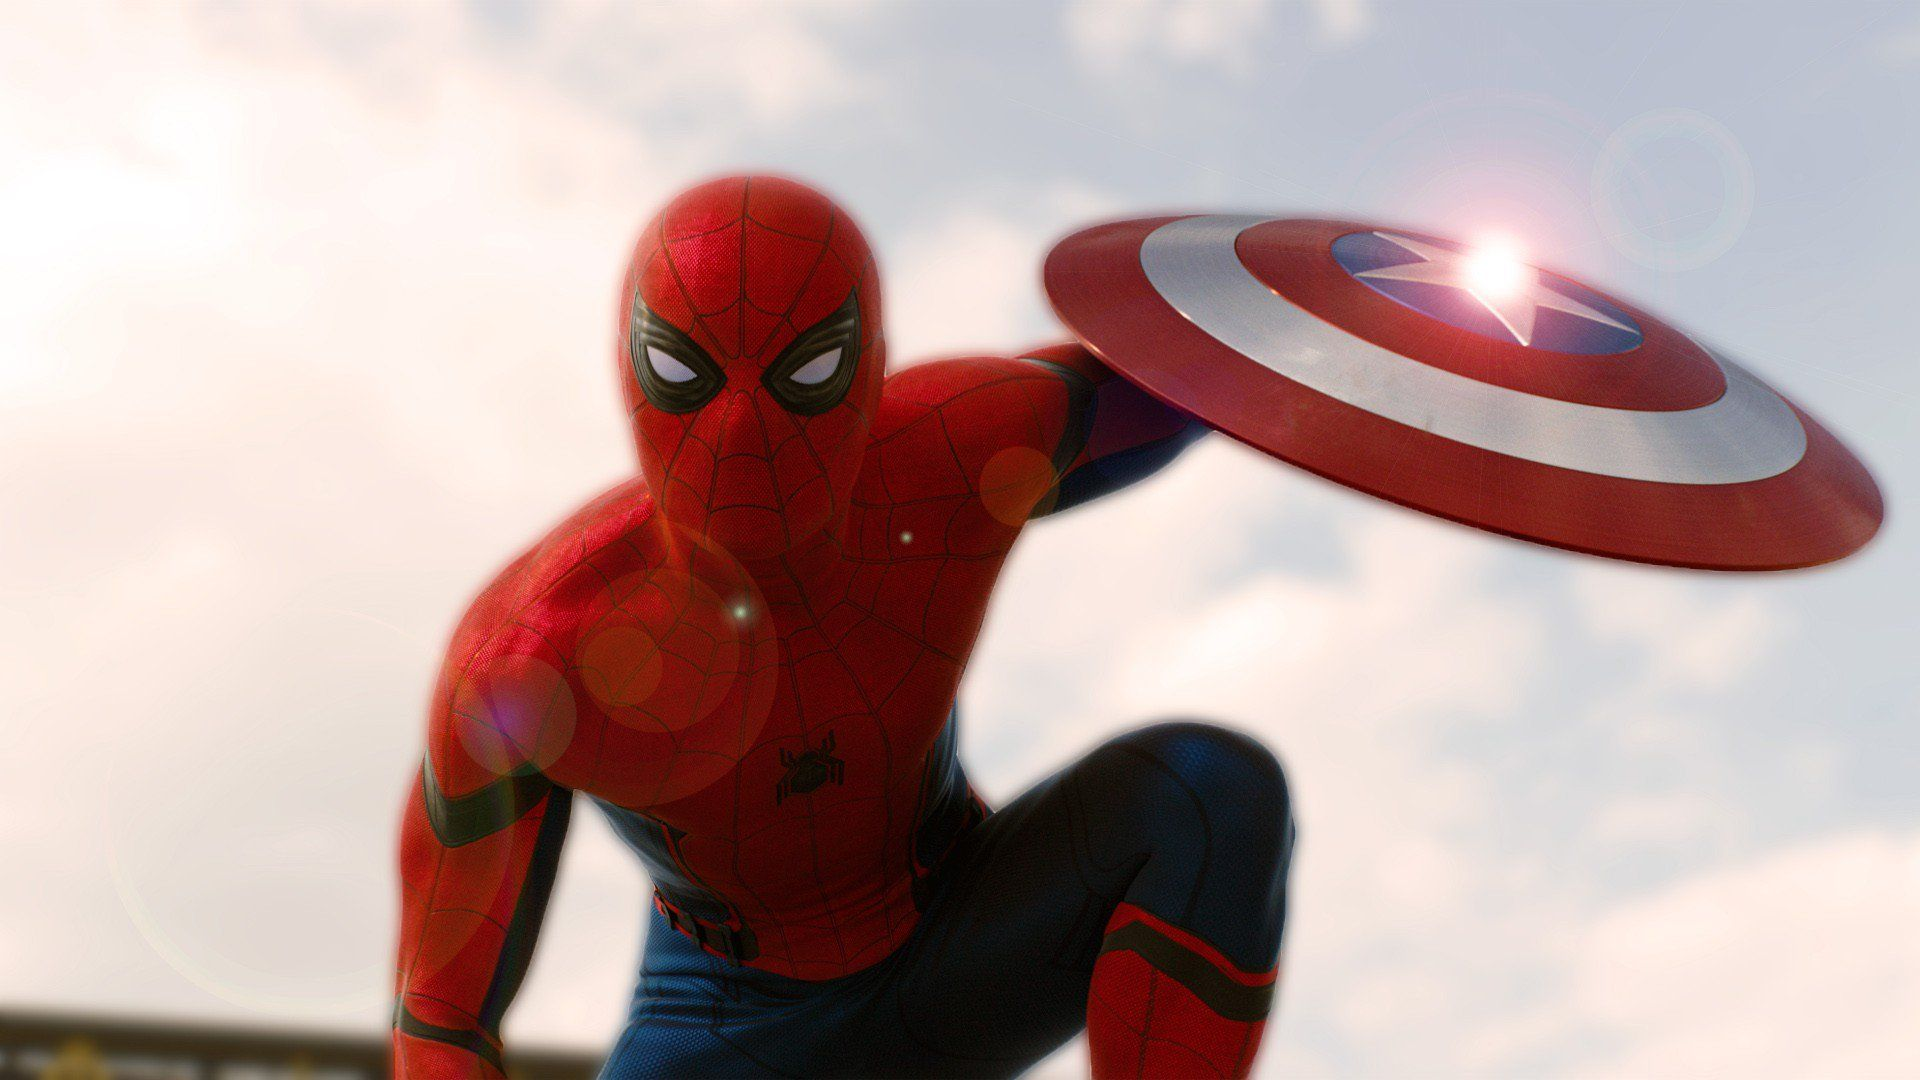 Captain America Hd Images Free Download Latest Captain America Hd